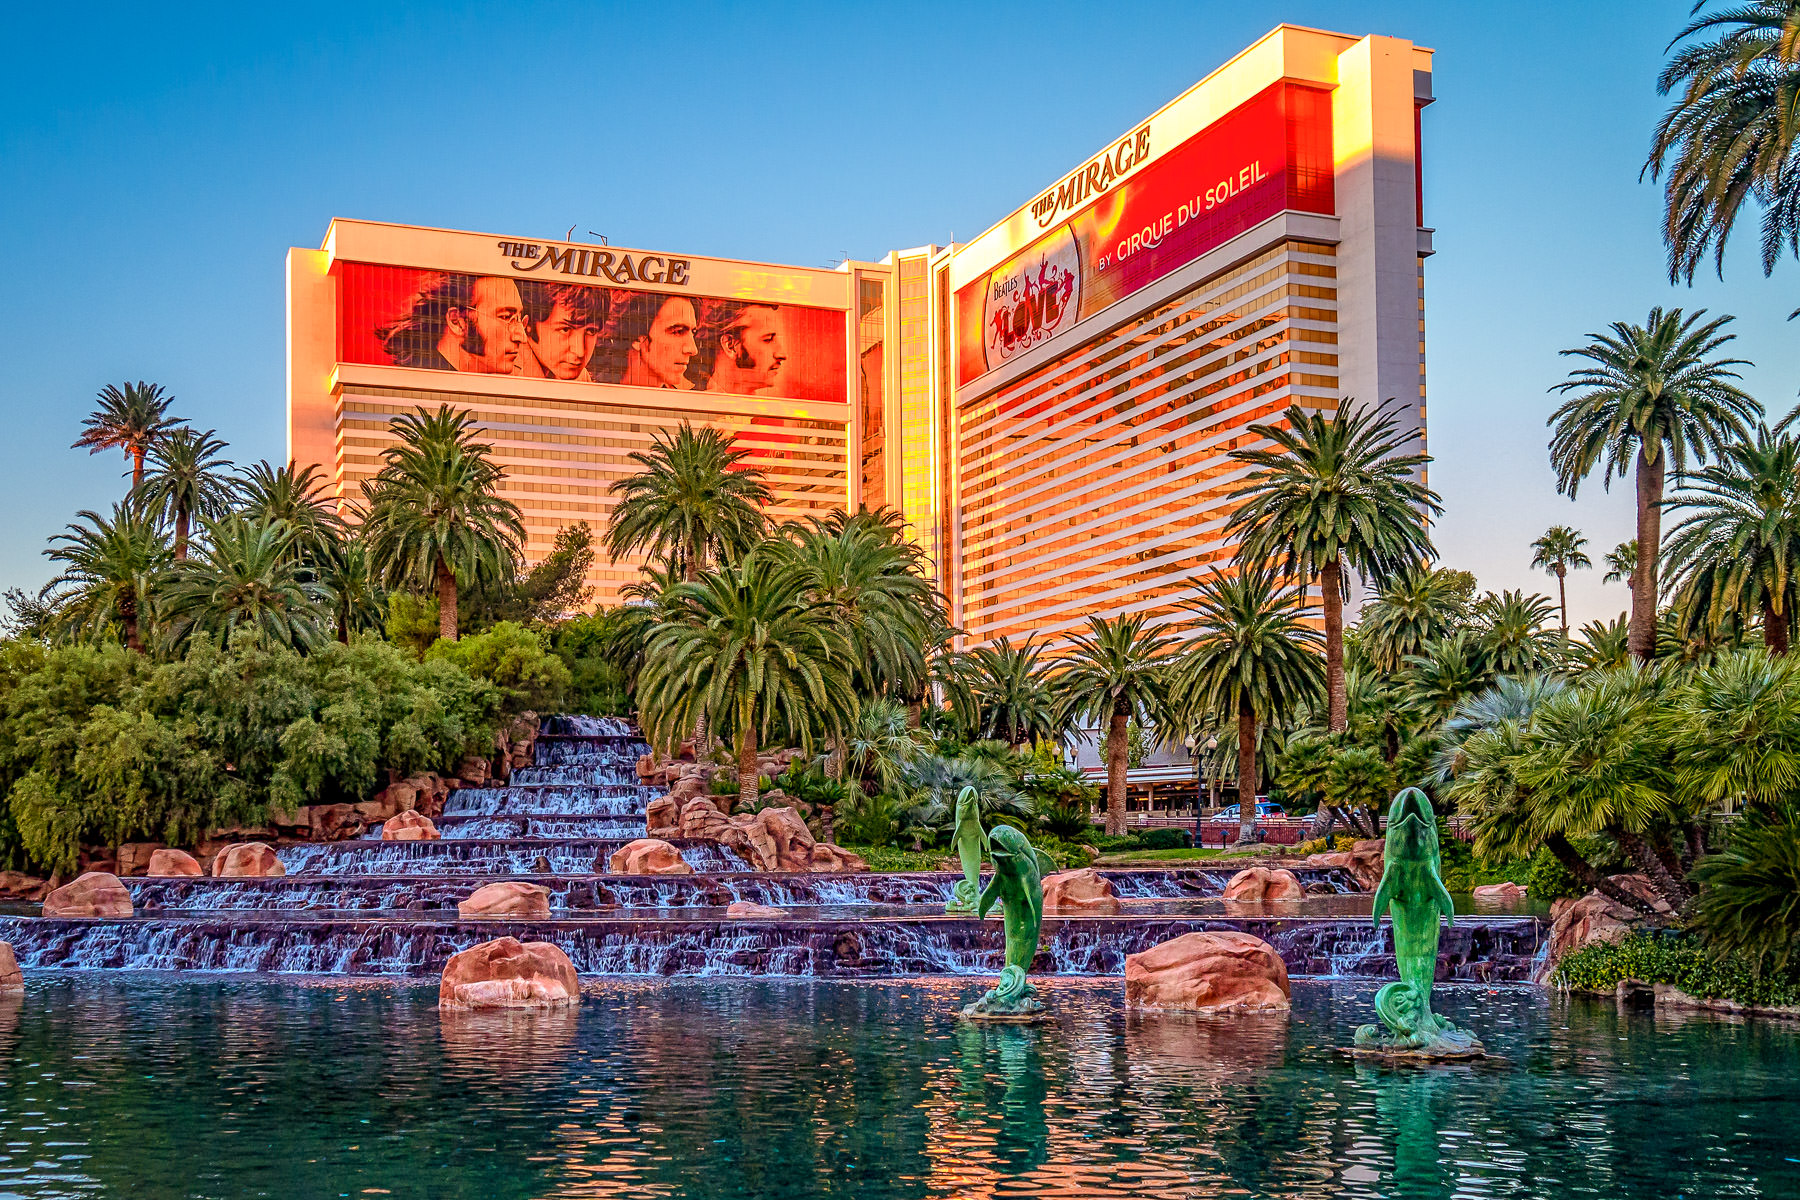 The early-morning sunlight illuminates Las Vegas' Mirage Hotel & Casino.